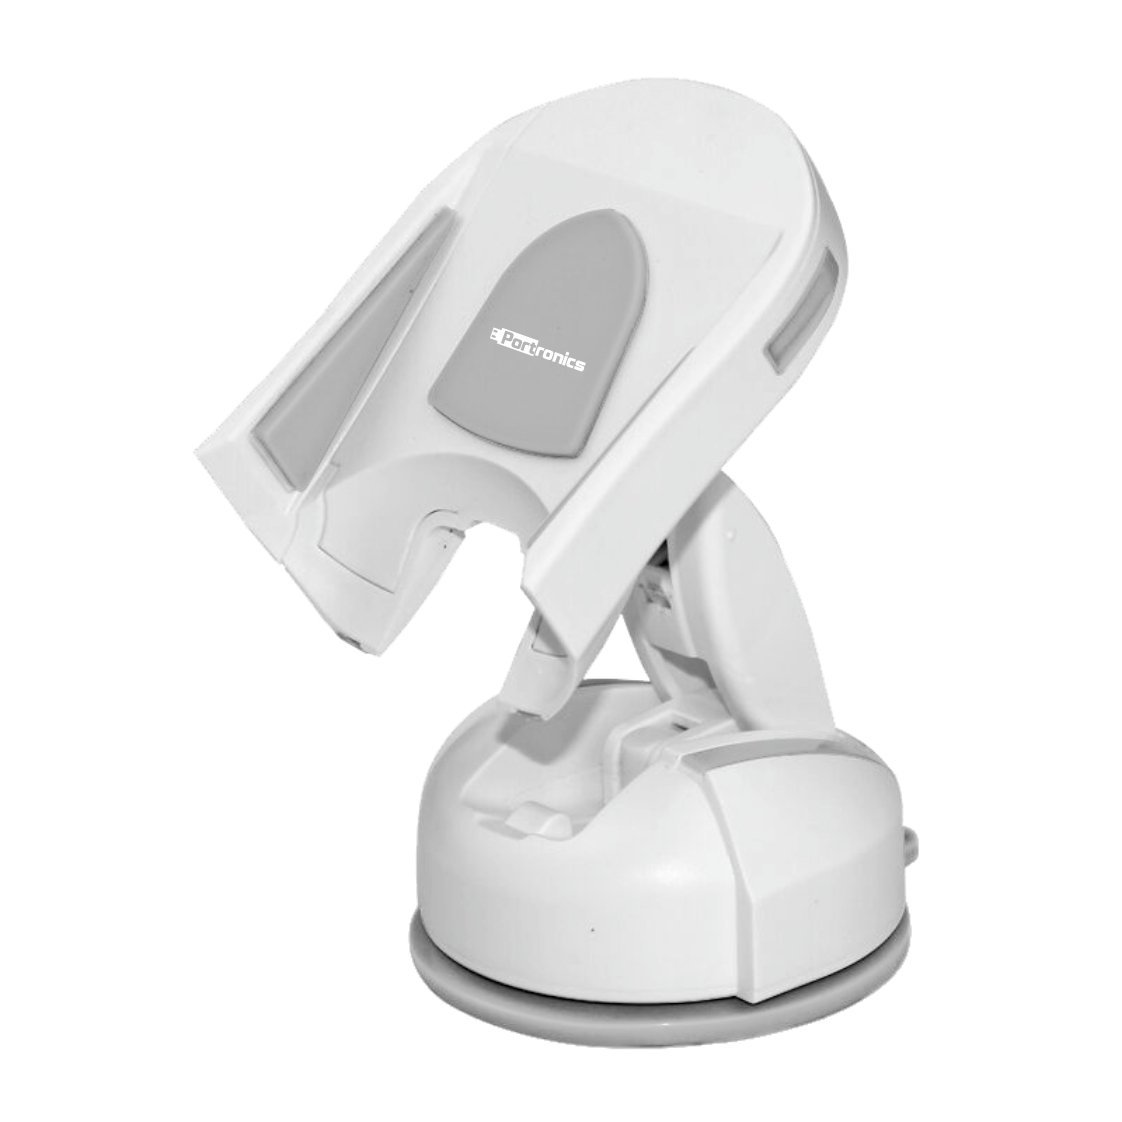 Portronics Mobot POR-813 Mobile Holder with Patented One Click Automatic Opening